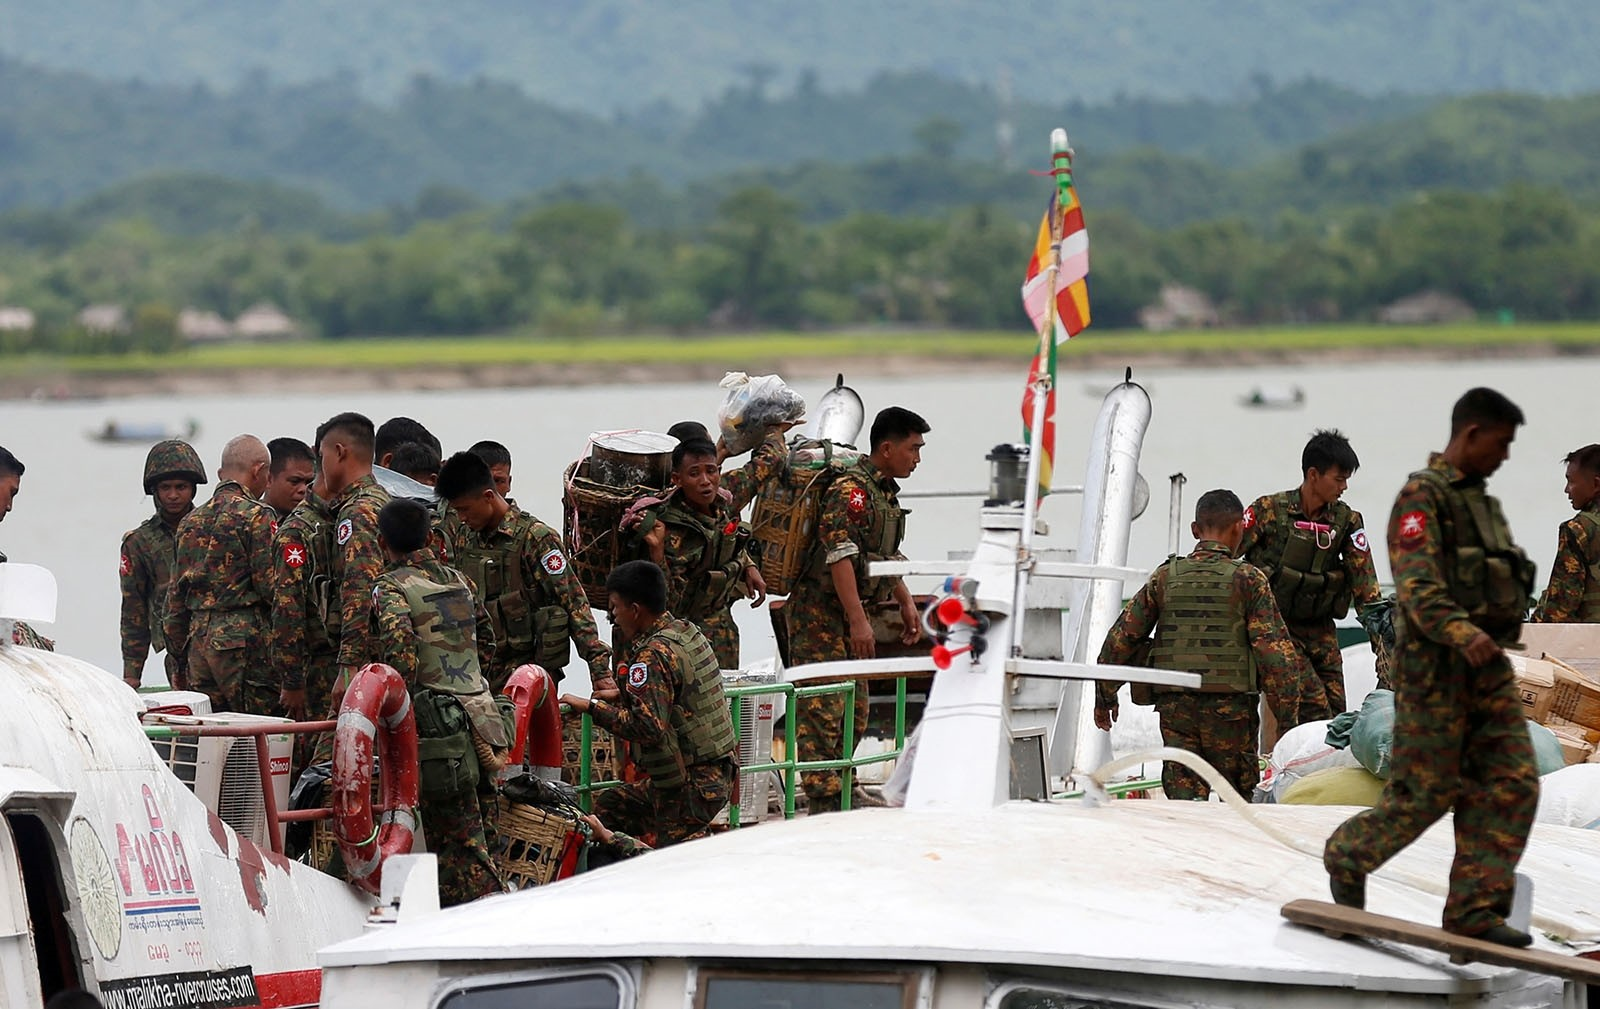 Myanmar soldiers arrive at Buthidaung jetty after the Arakan Rohingya Salvation Army's (ARSA) attacks, at Buthidaung, Myanmar August 29, 2017.